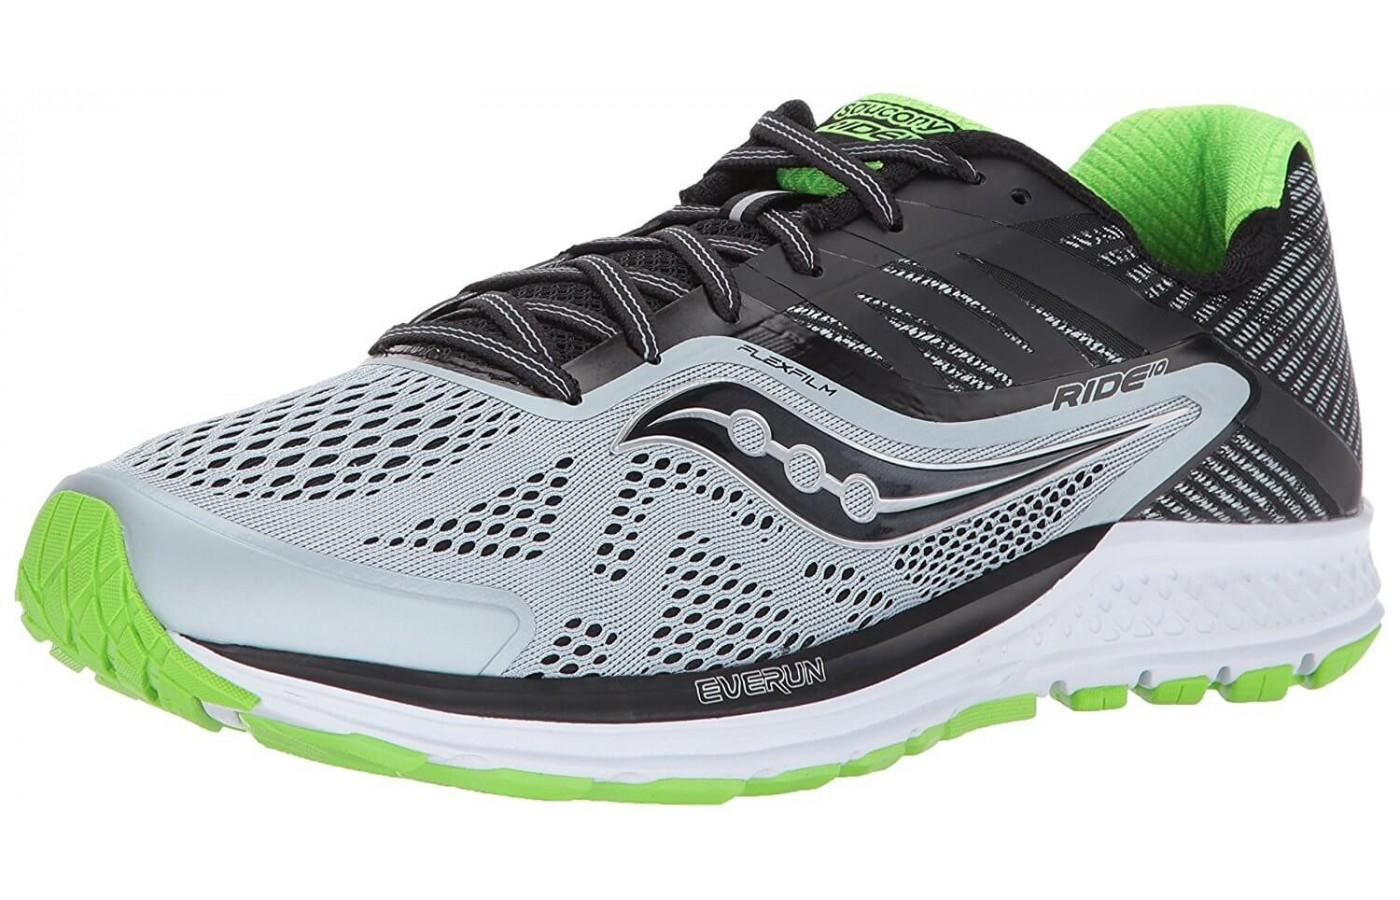 this is the 10 iteration in the saucony ride line